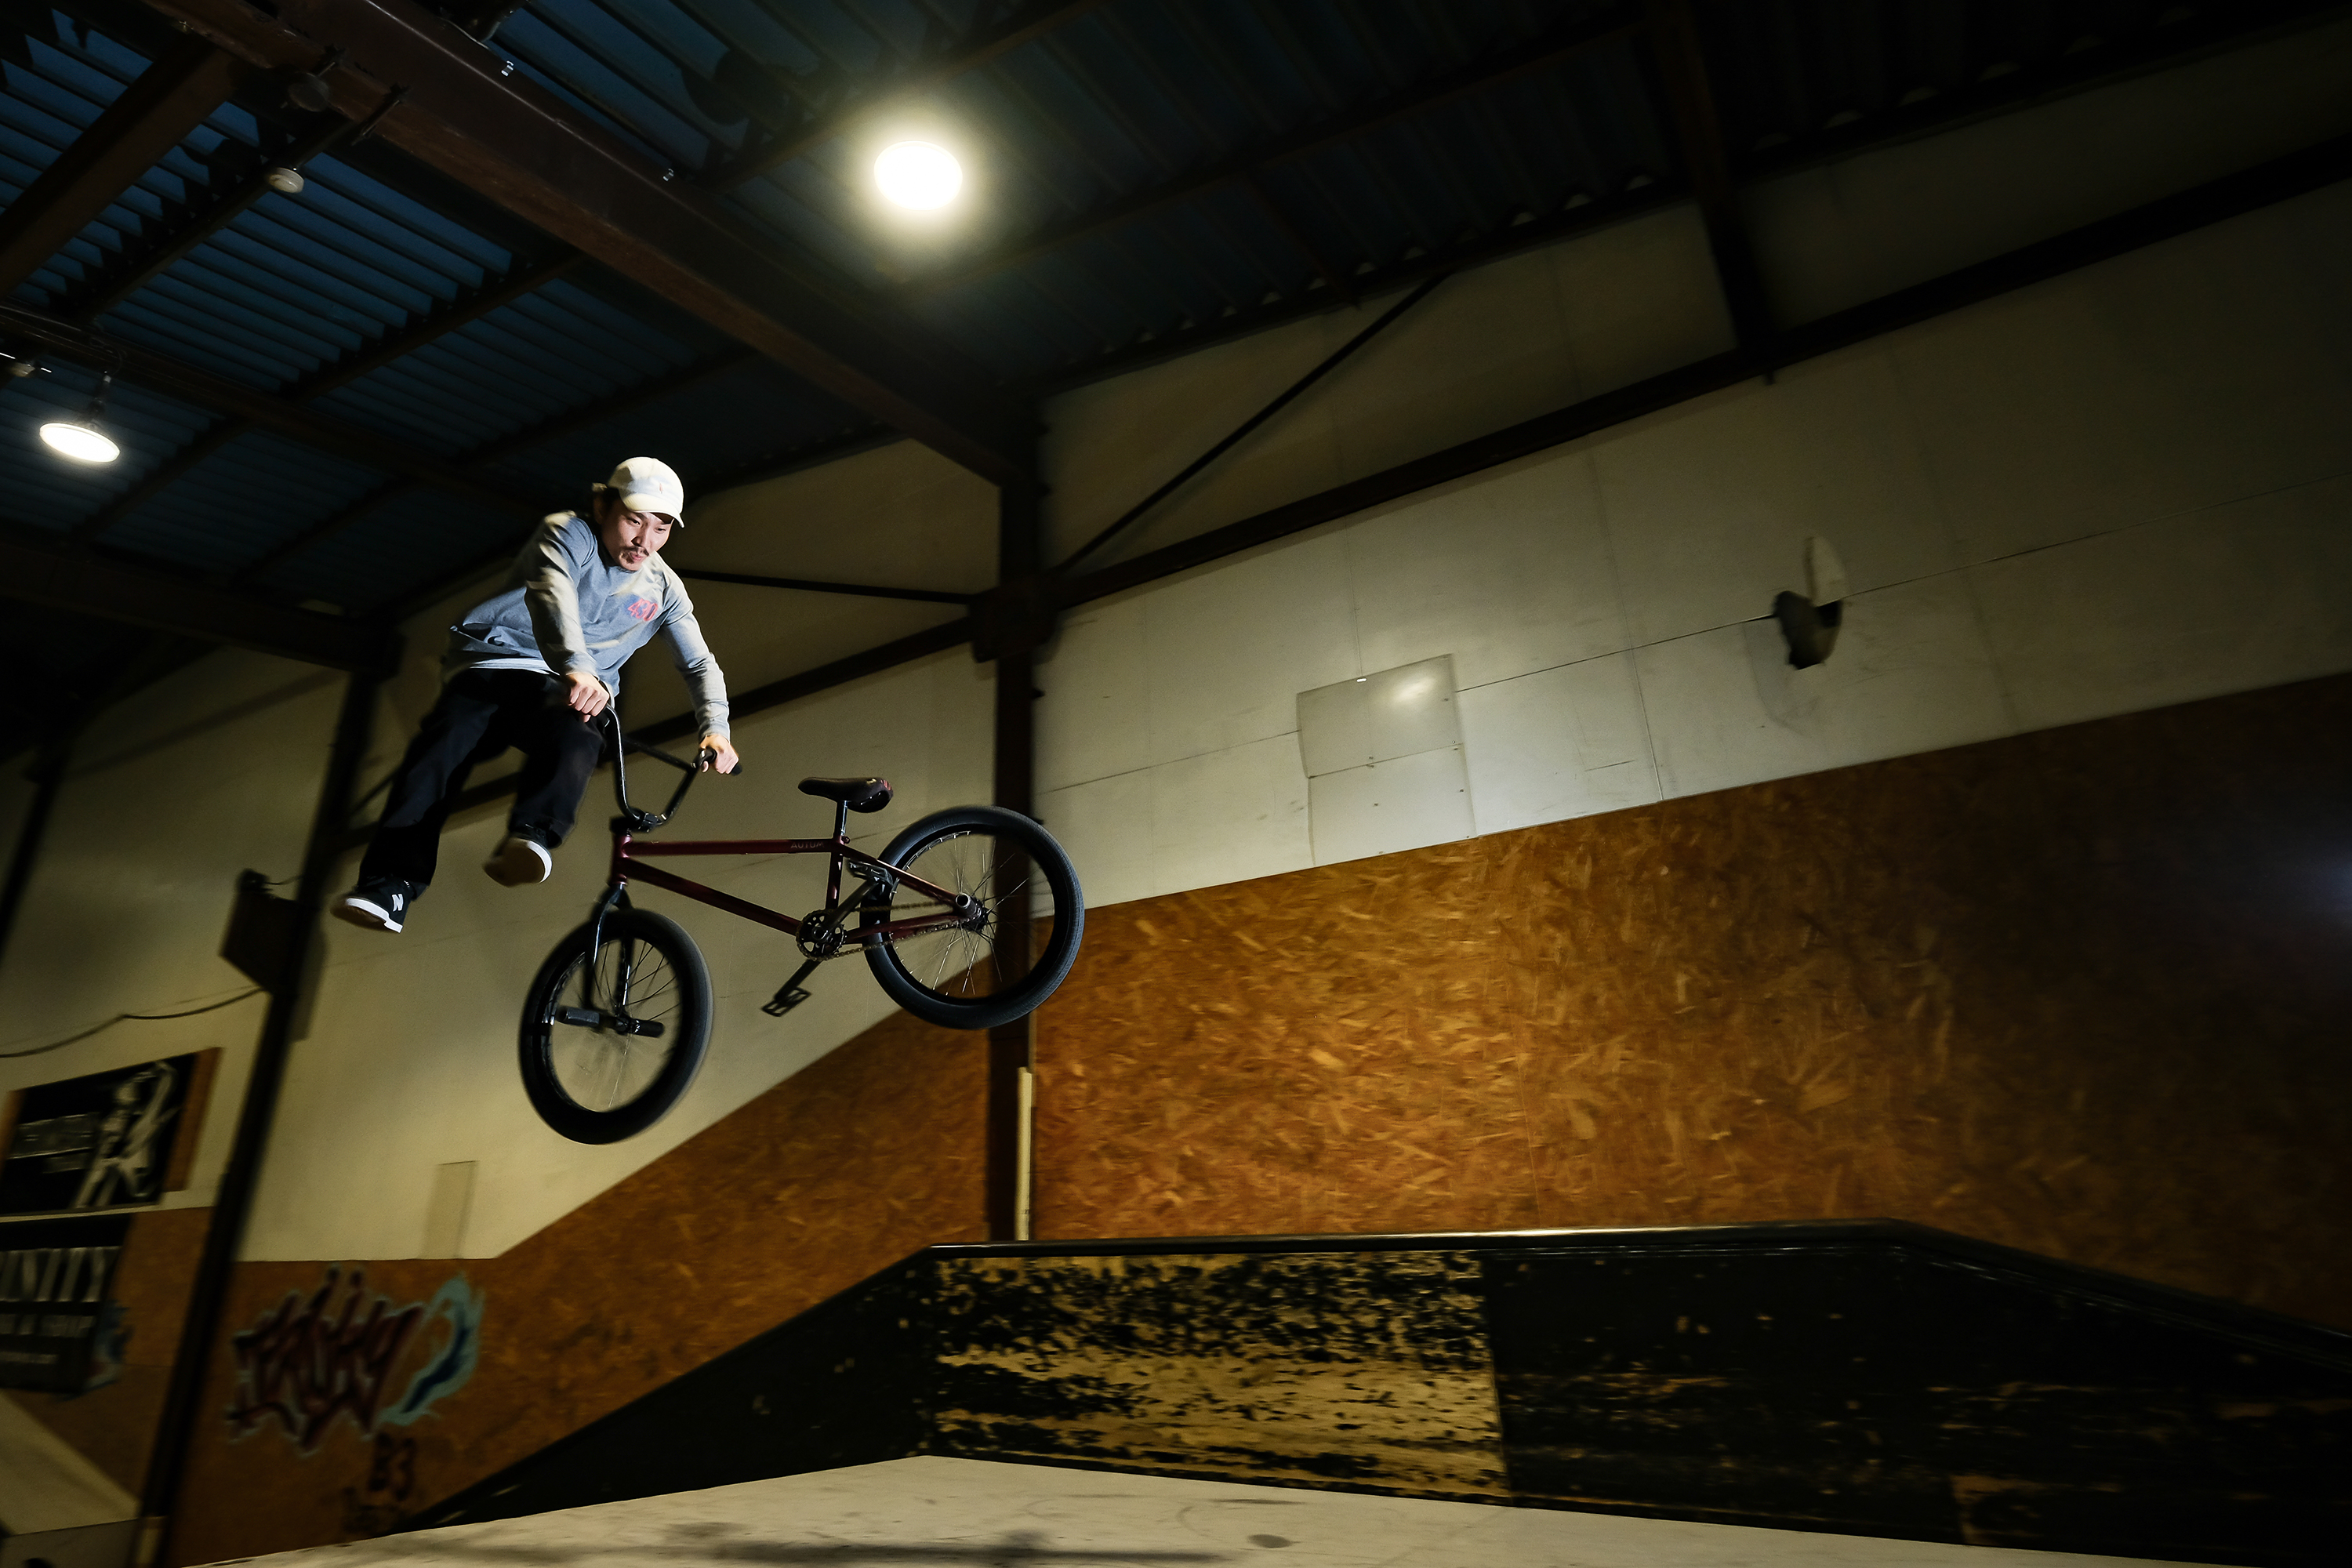 Fuji X-H1 - Sample Image - Indoor BMX